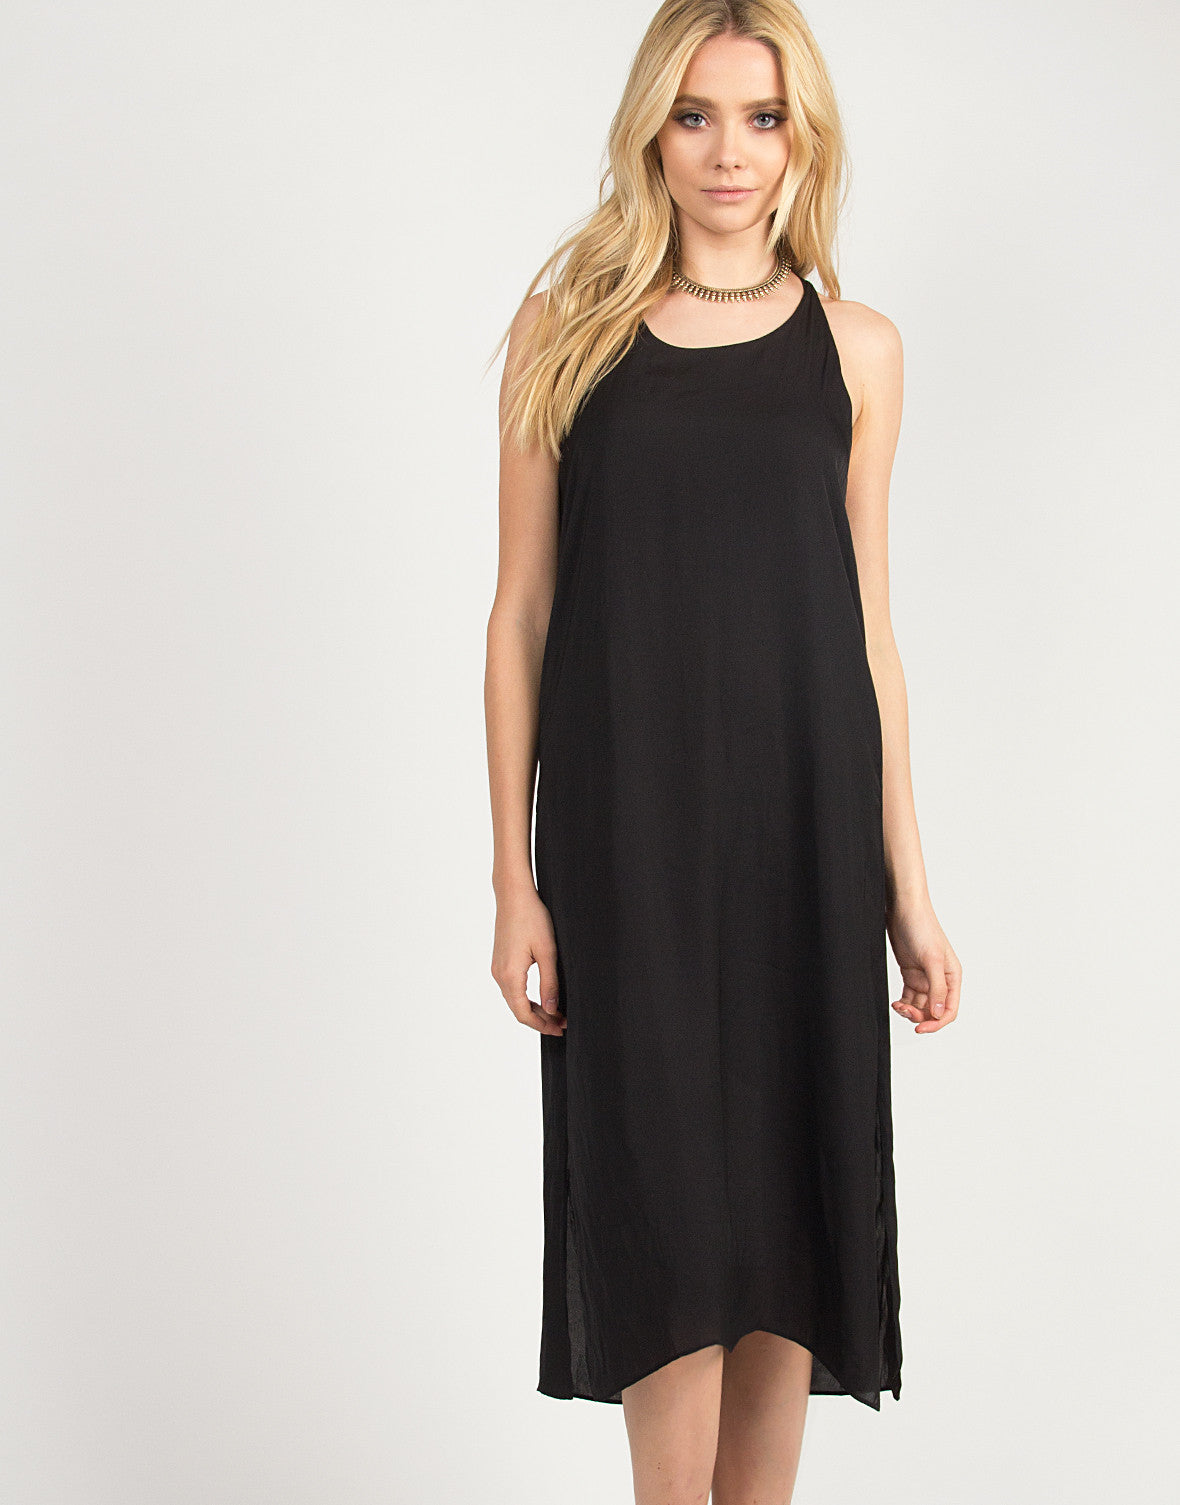 Silky Knotted Back Dress - Black